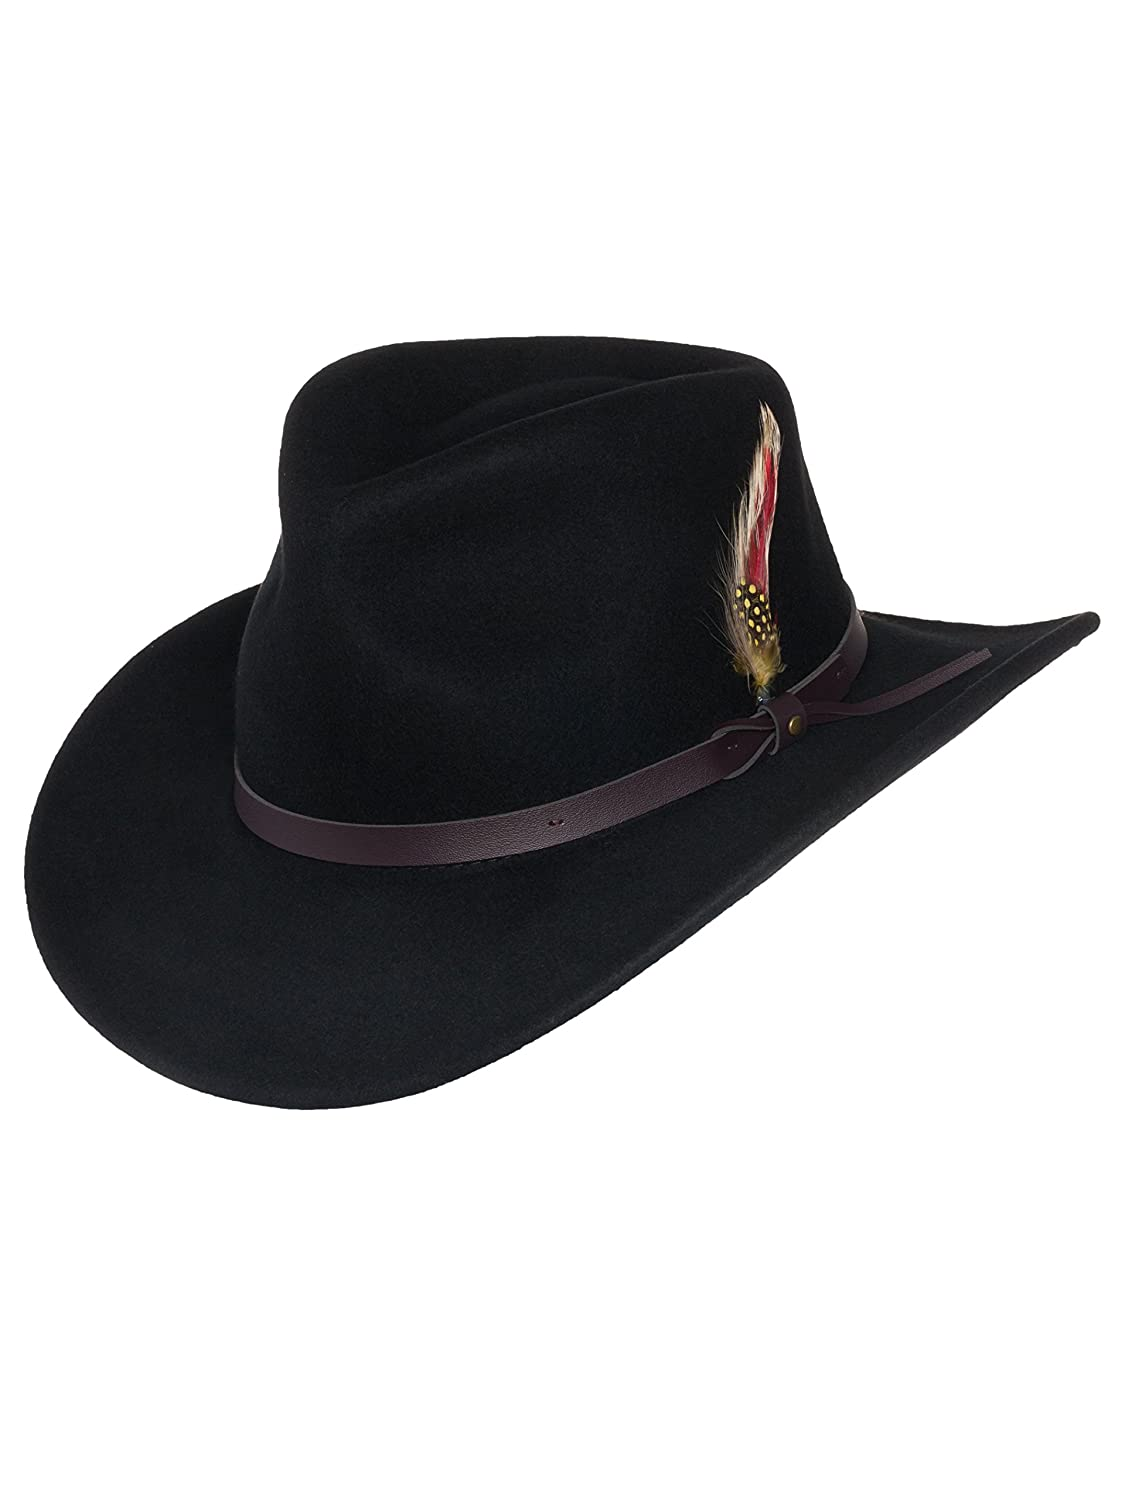 8bc4eef67 Men's Outback Wool Cowboy Hat |Montana Black Crushable Western Felt ...